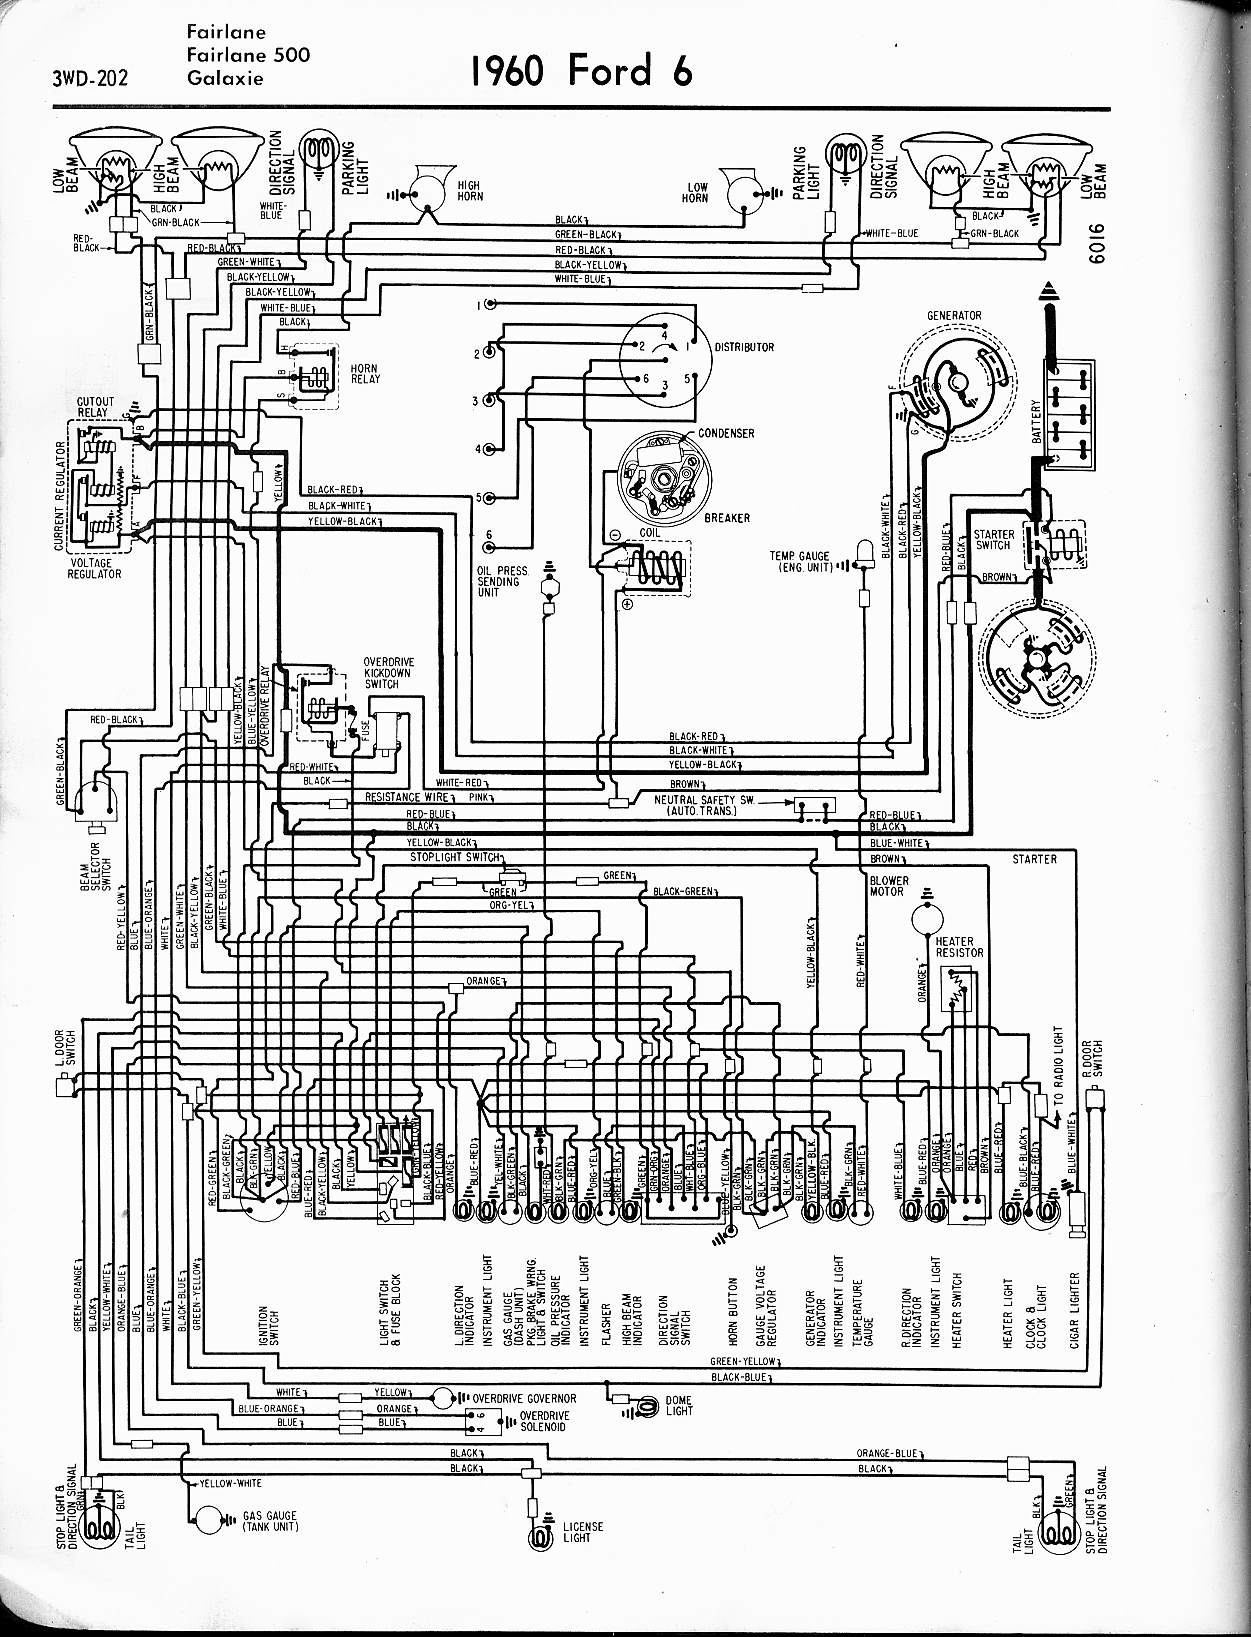 MWire5765 202 57 65 ford wiring diagrams 65 ford f100 wiring diagram at webbmarketing.co